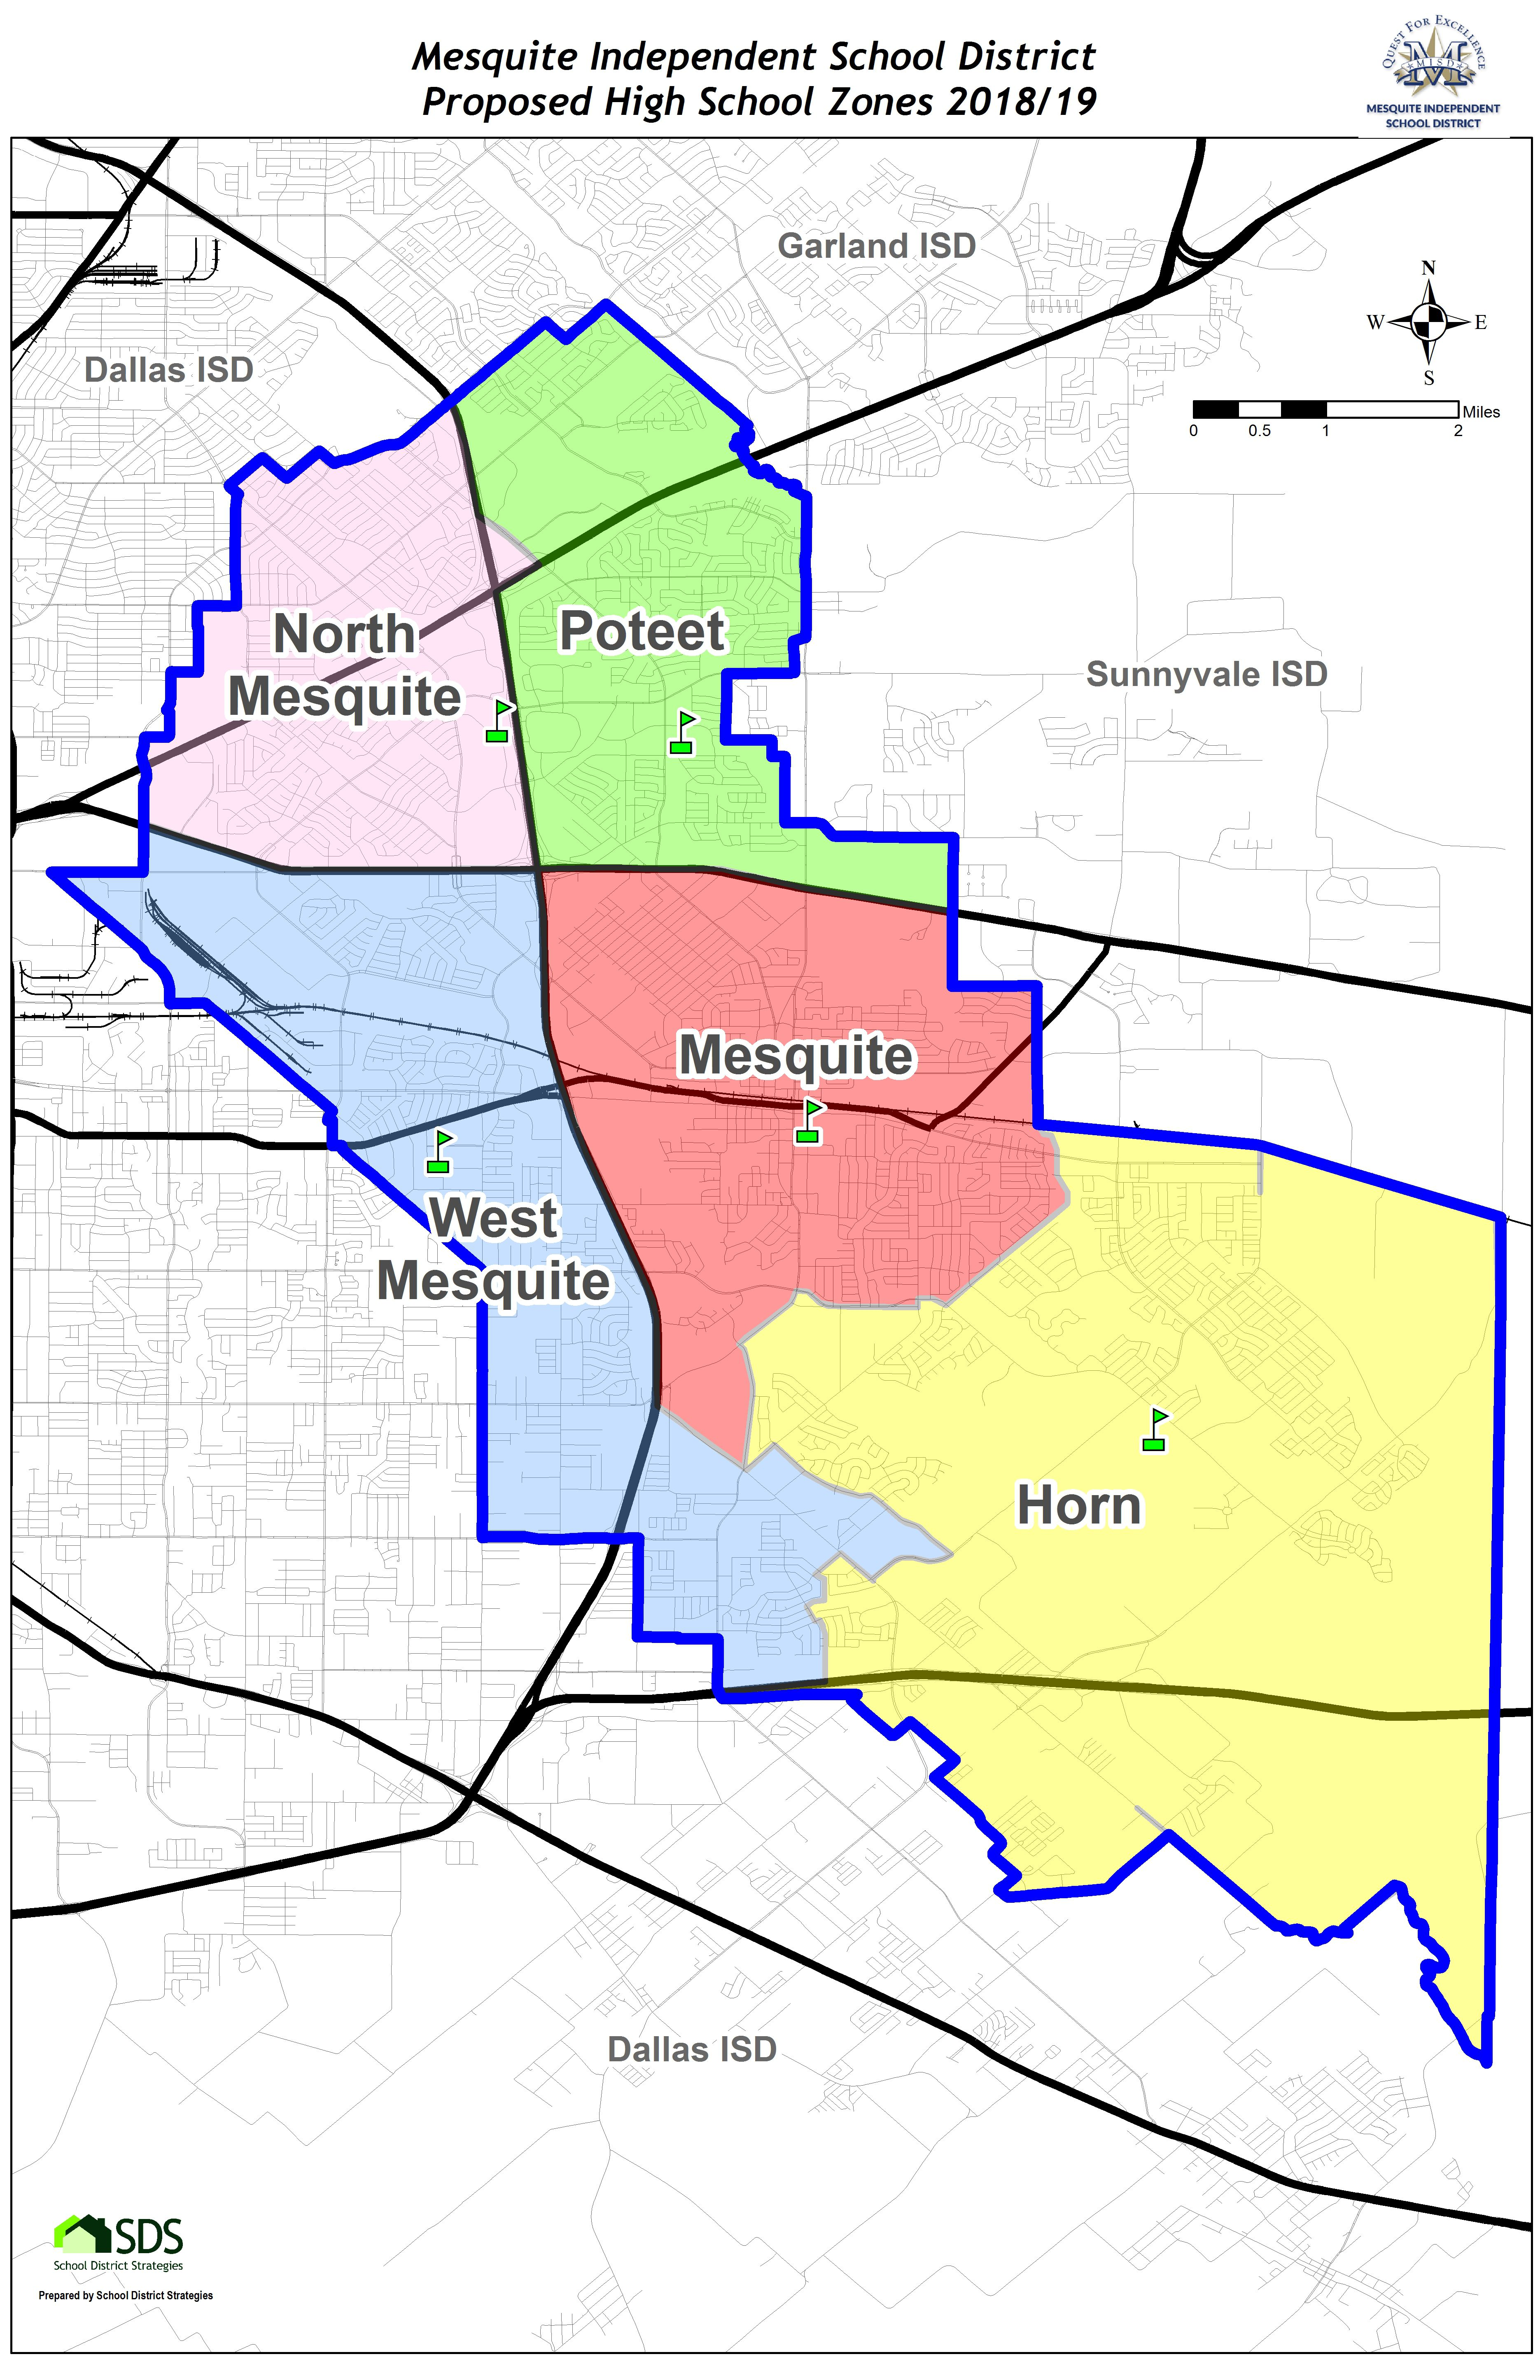 Middle schoolers face the brunt of Mesquite ISD plan to